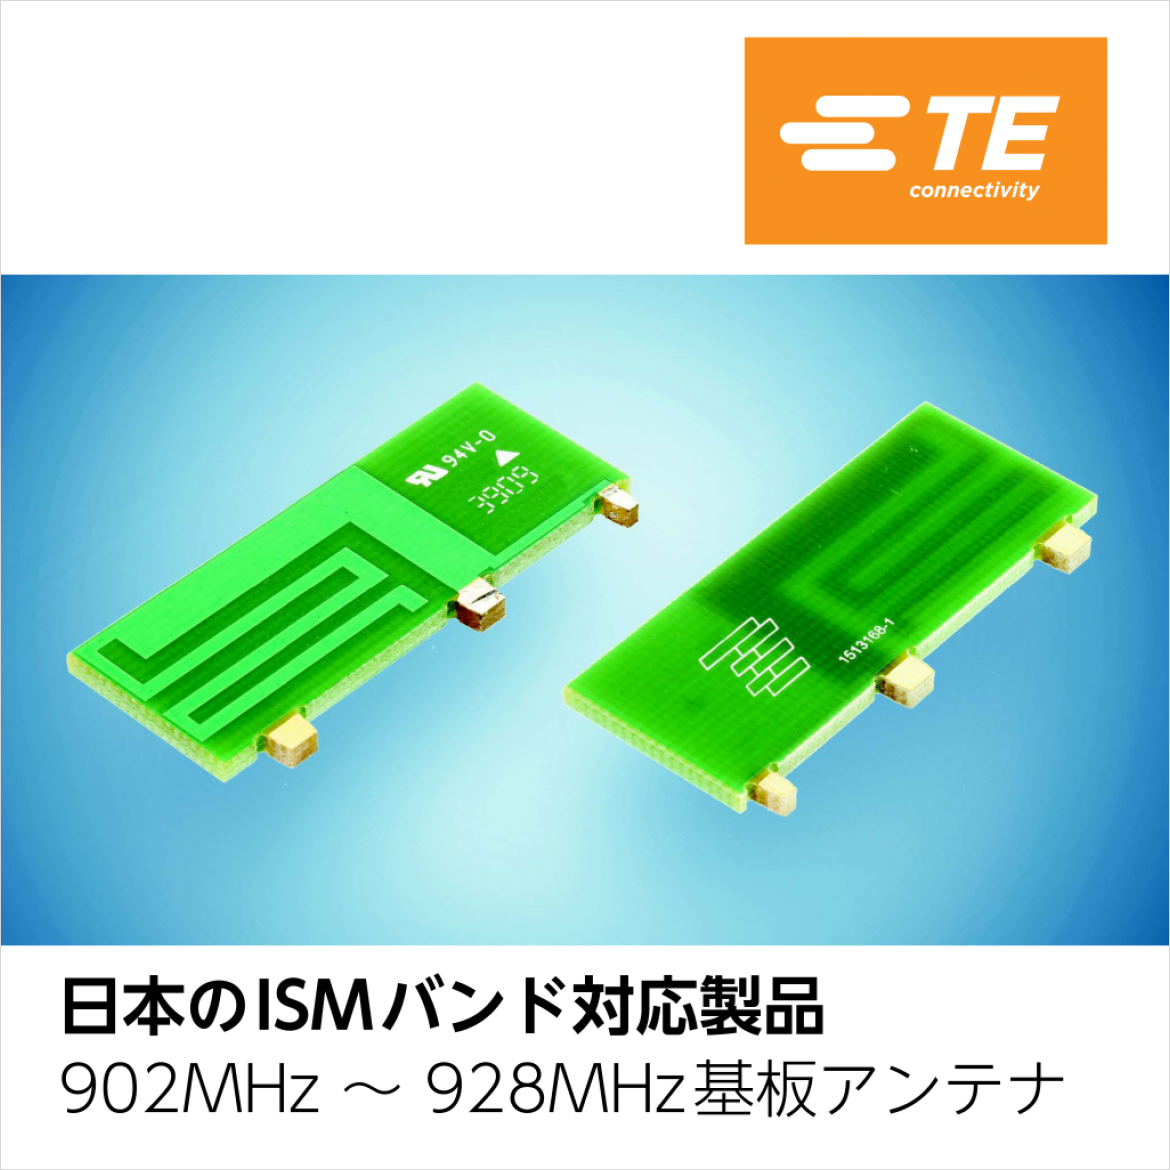 902MHz ~ 928MHz Single Band アンテナ (型番 1513168-1)